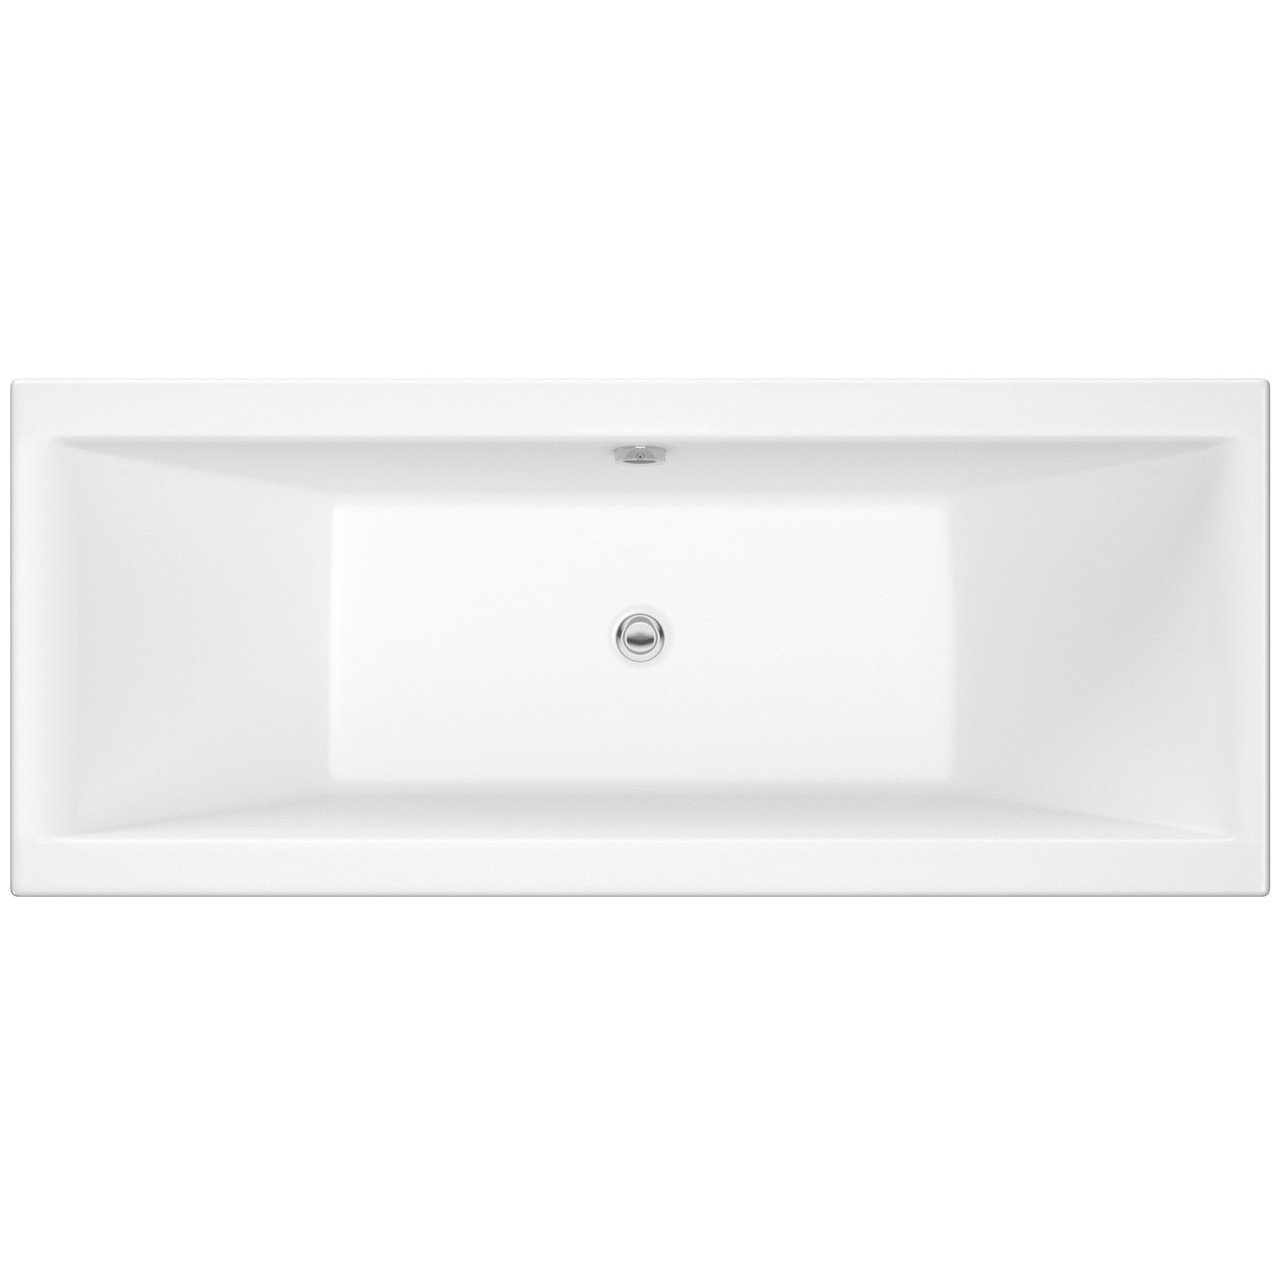 Nuie Asselby 1800mm x 800mm Square Double Ended Bath - NBA214